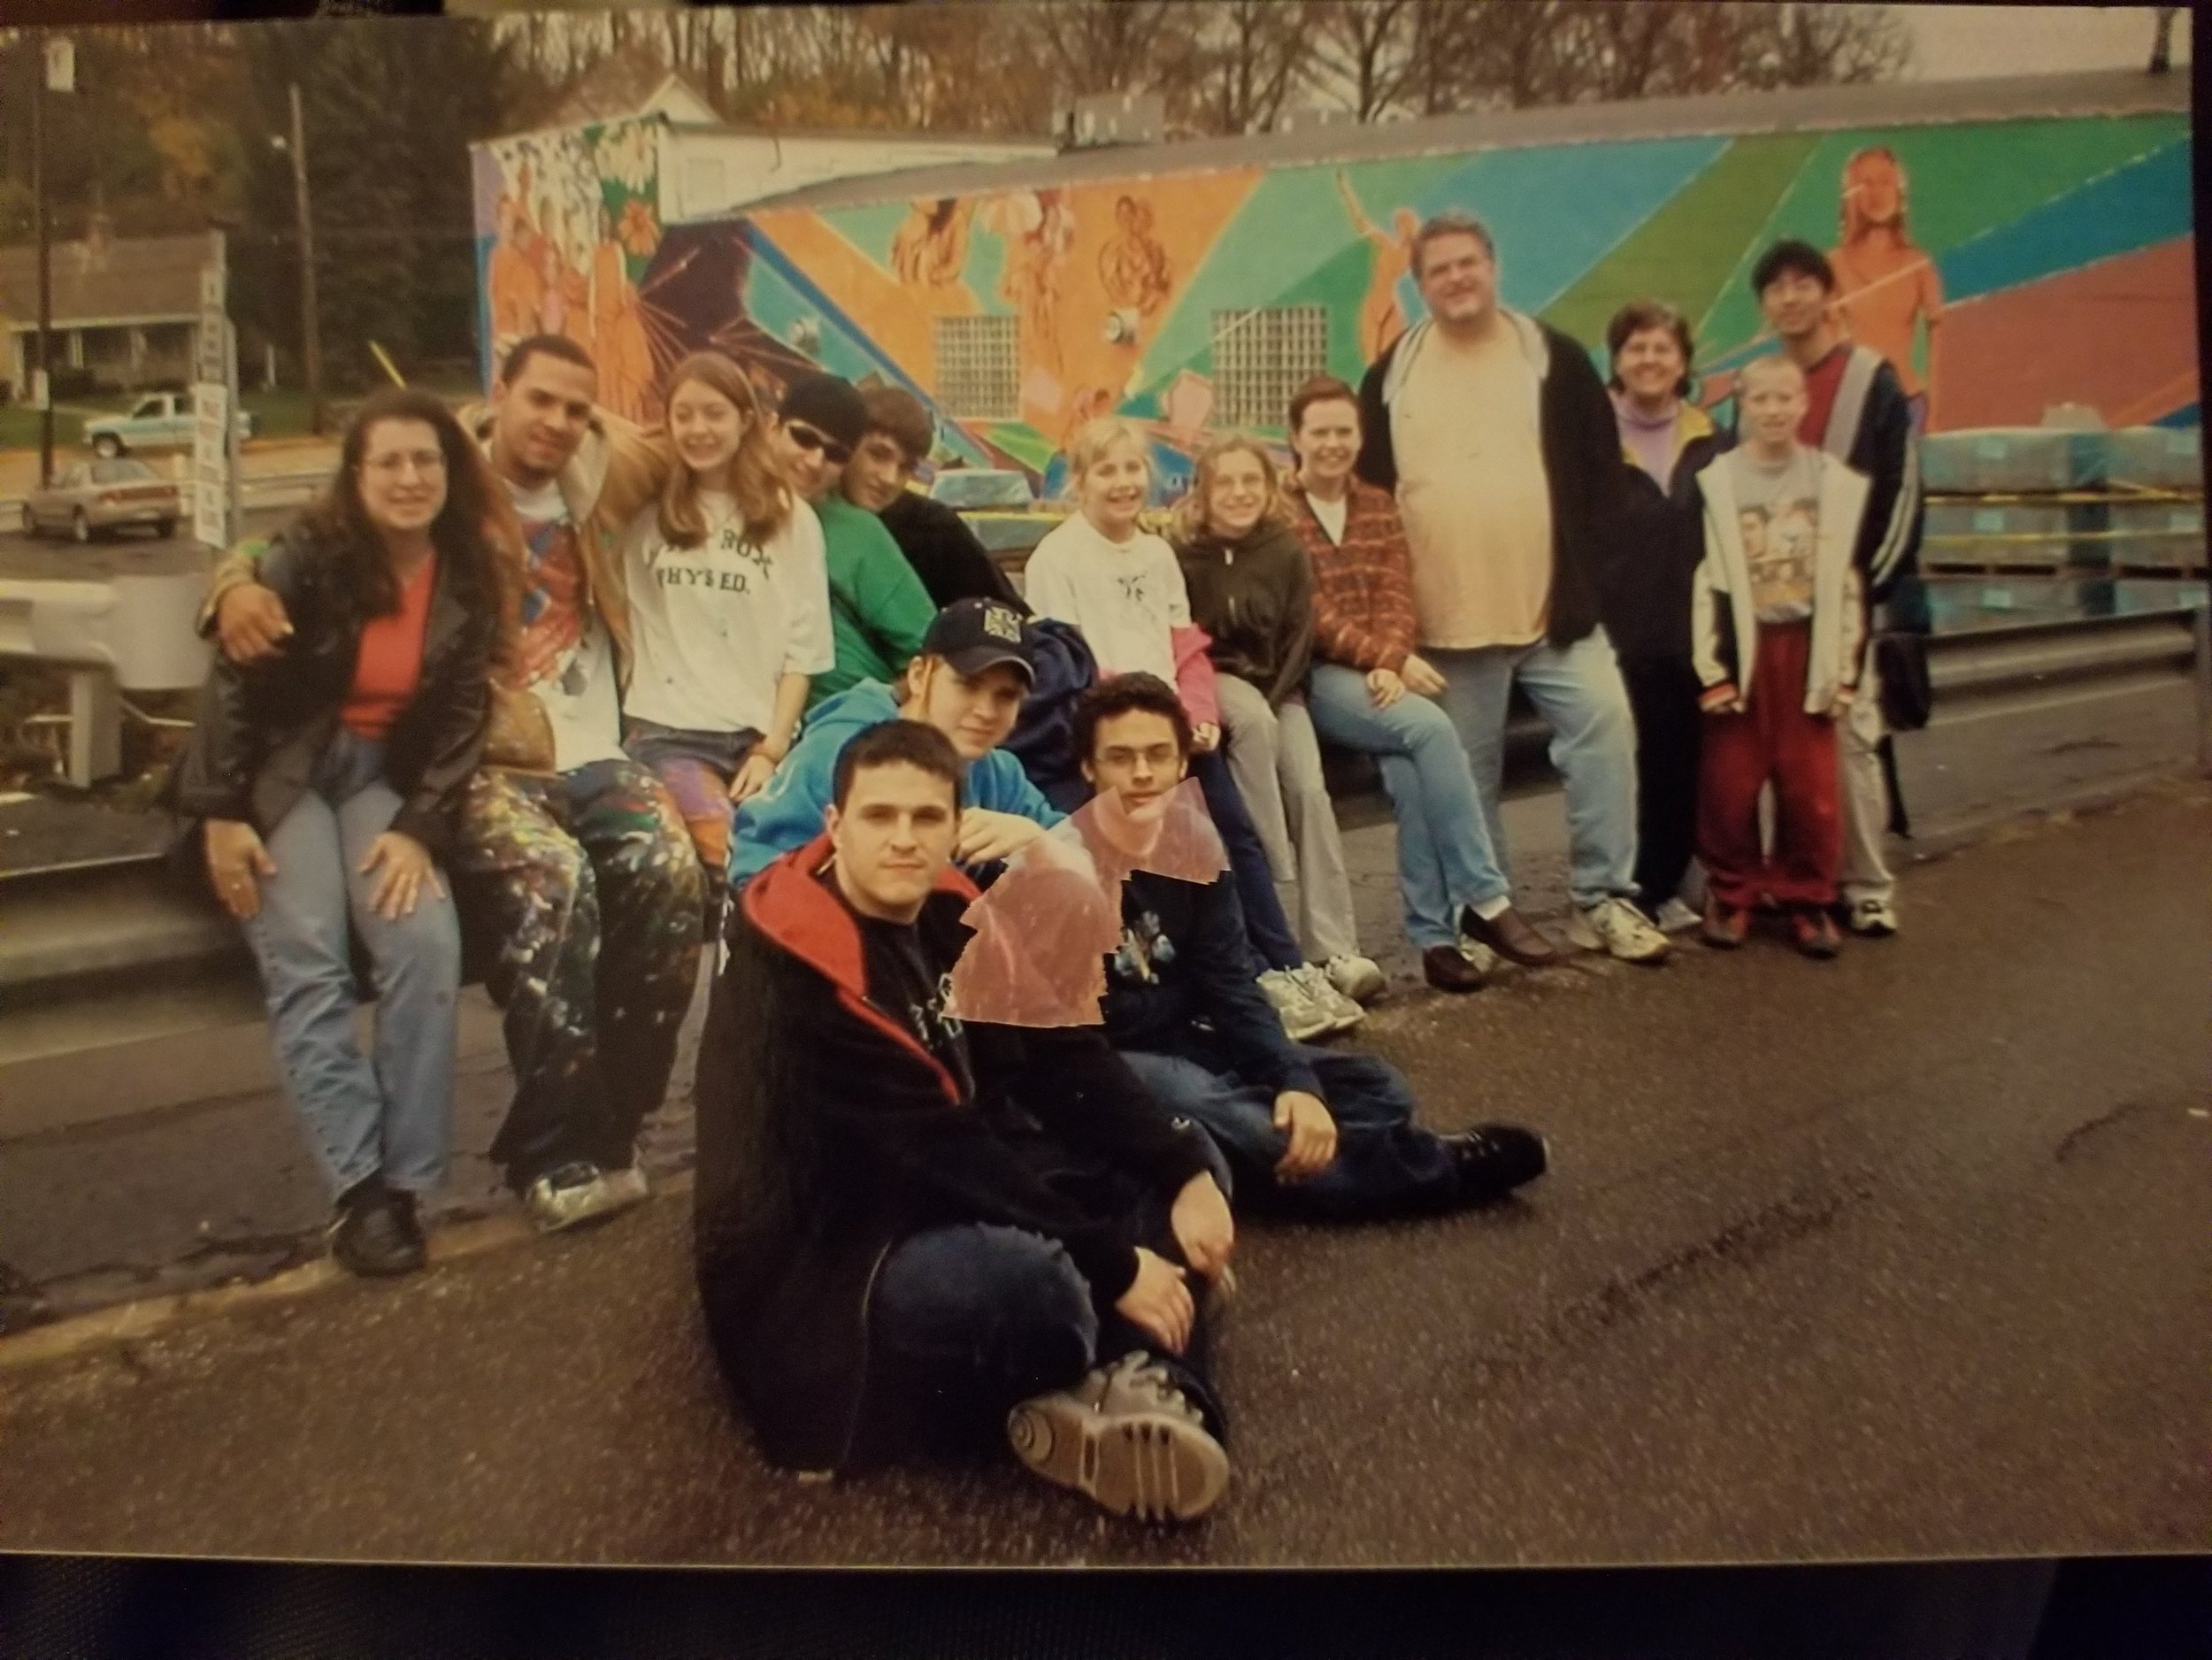 McKees Rocks Tobacco Free Allegheny Mural - The mural with Focus on Renewal was to bring attention to the dangers of Tobacco use.Special Thanks to father Ryan.